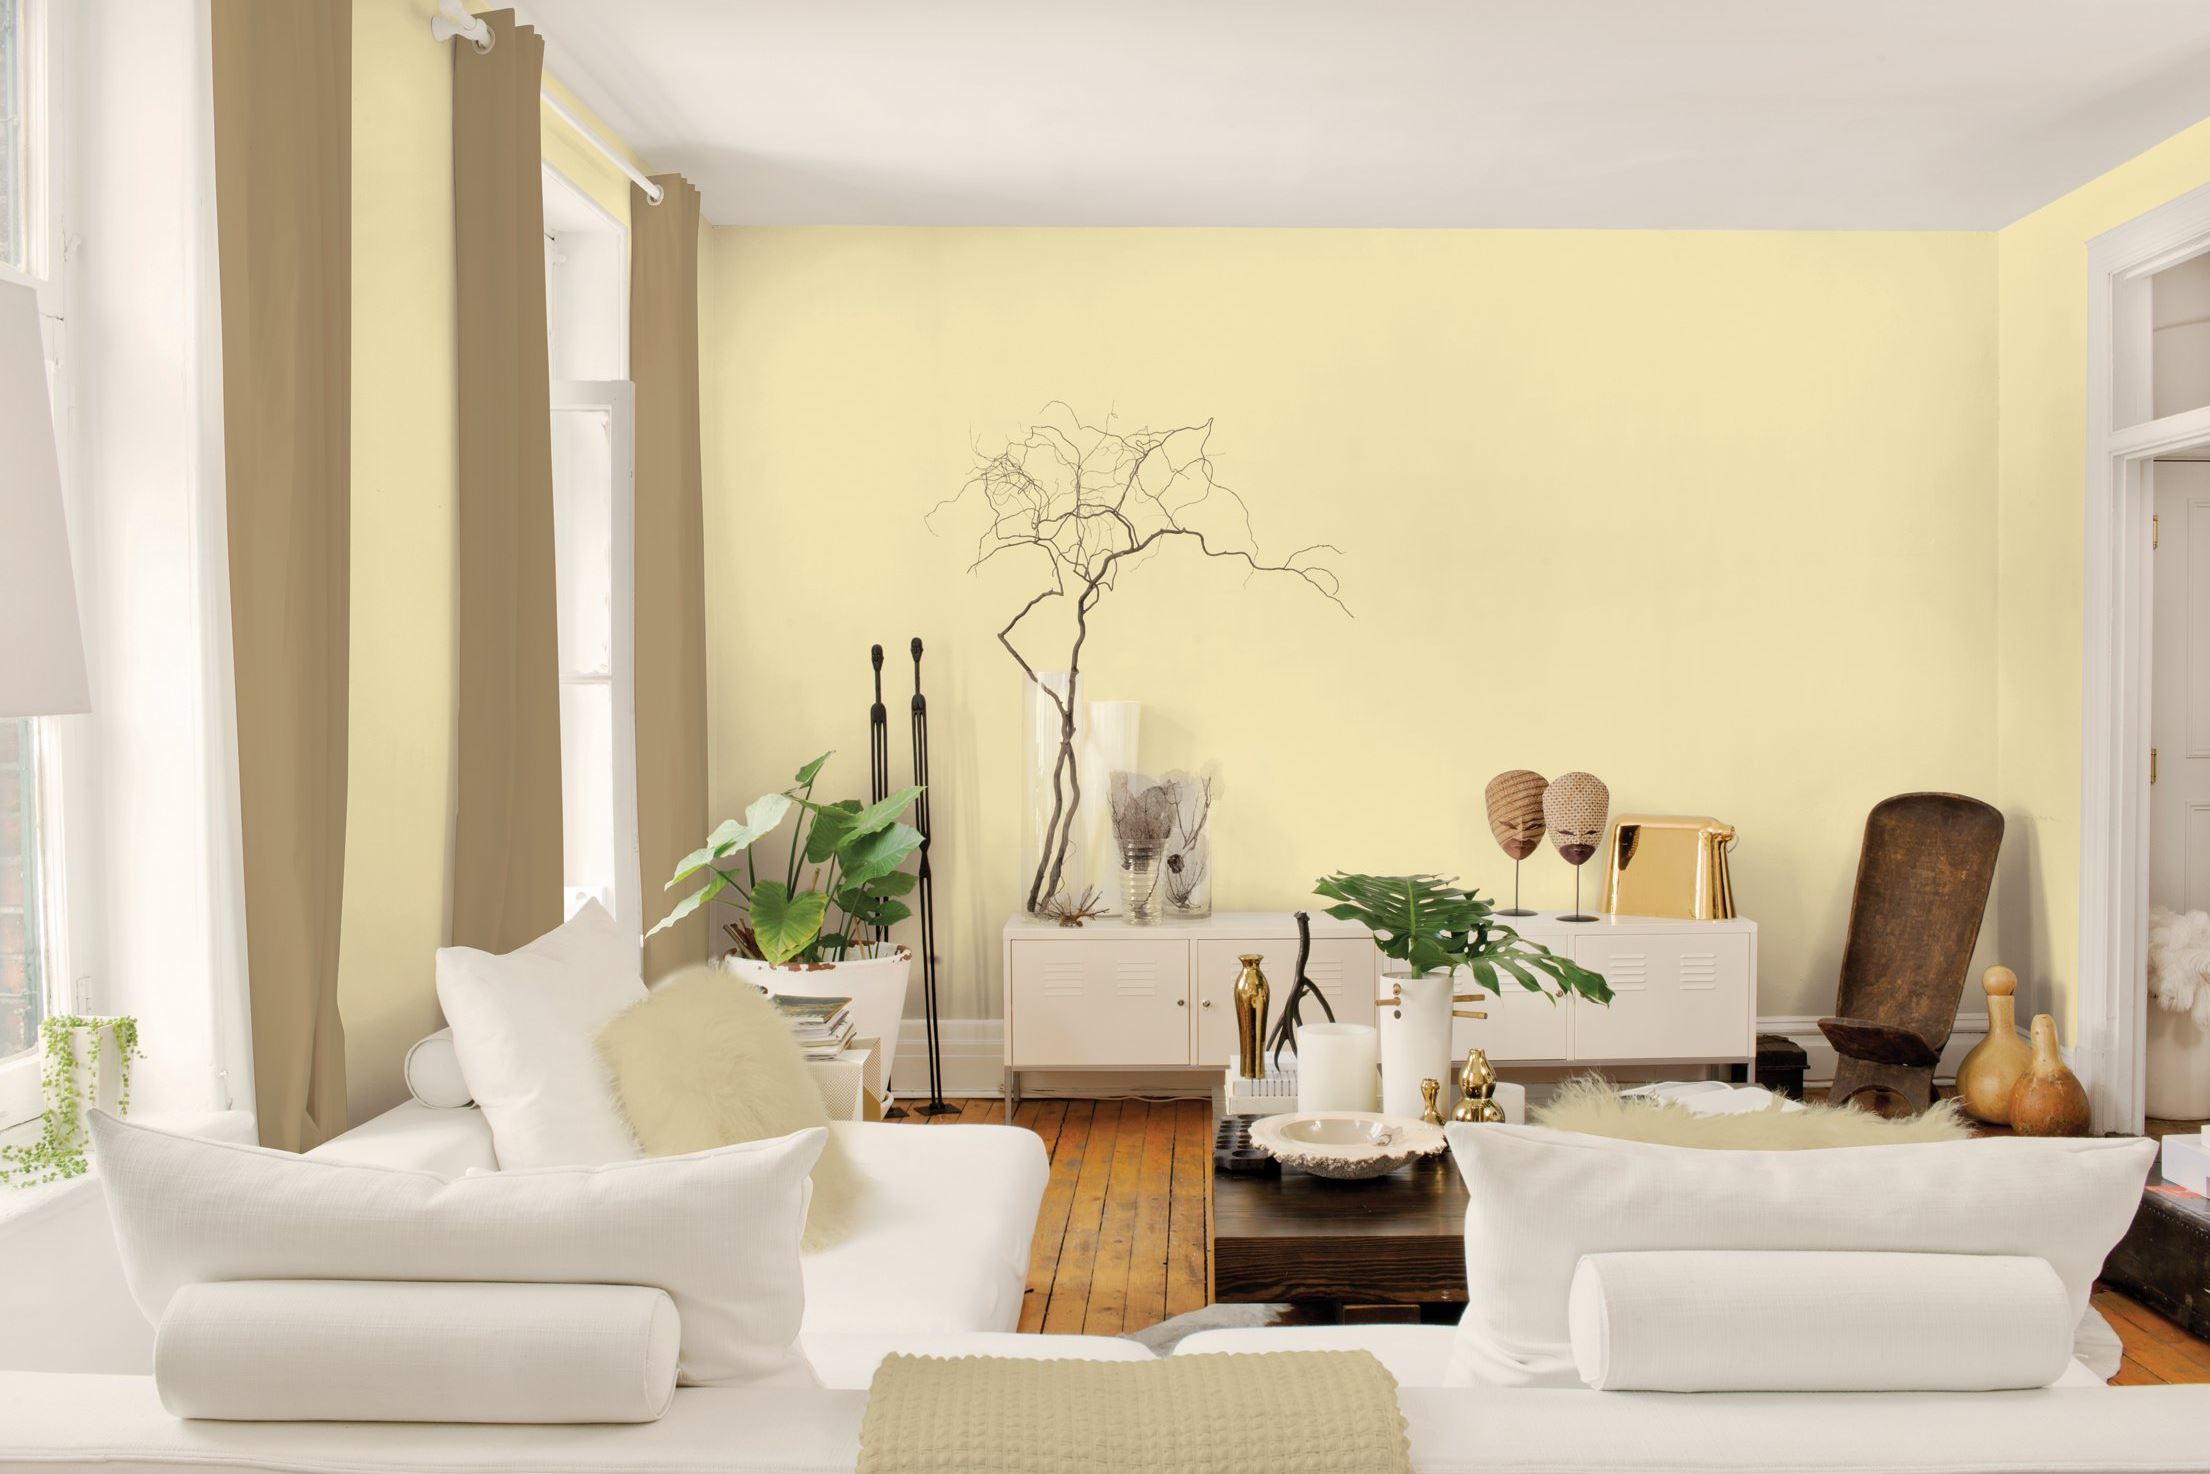 Best Interior Paint Colors 2014 Interior Paint Colors 2014 New